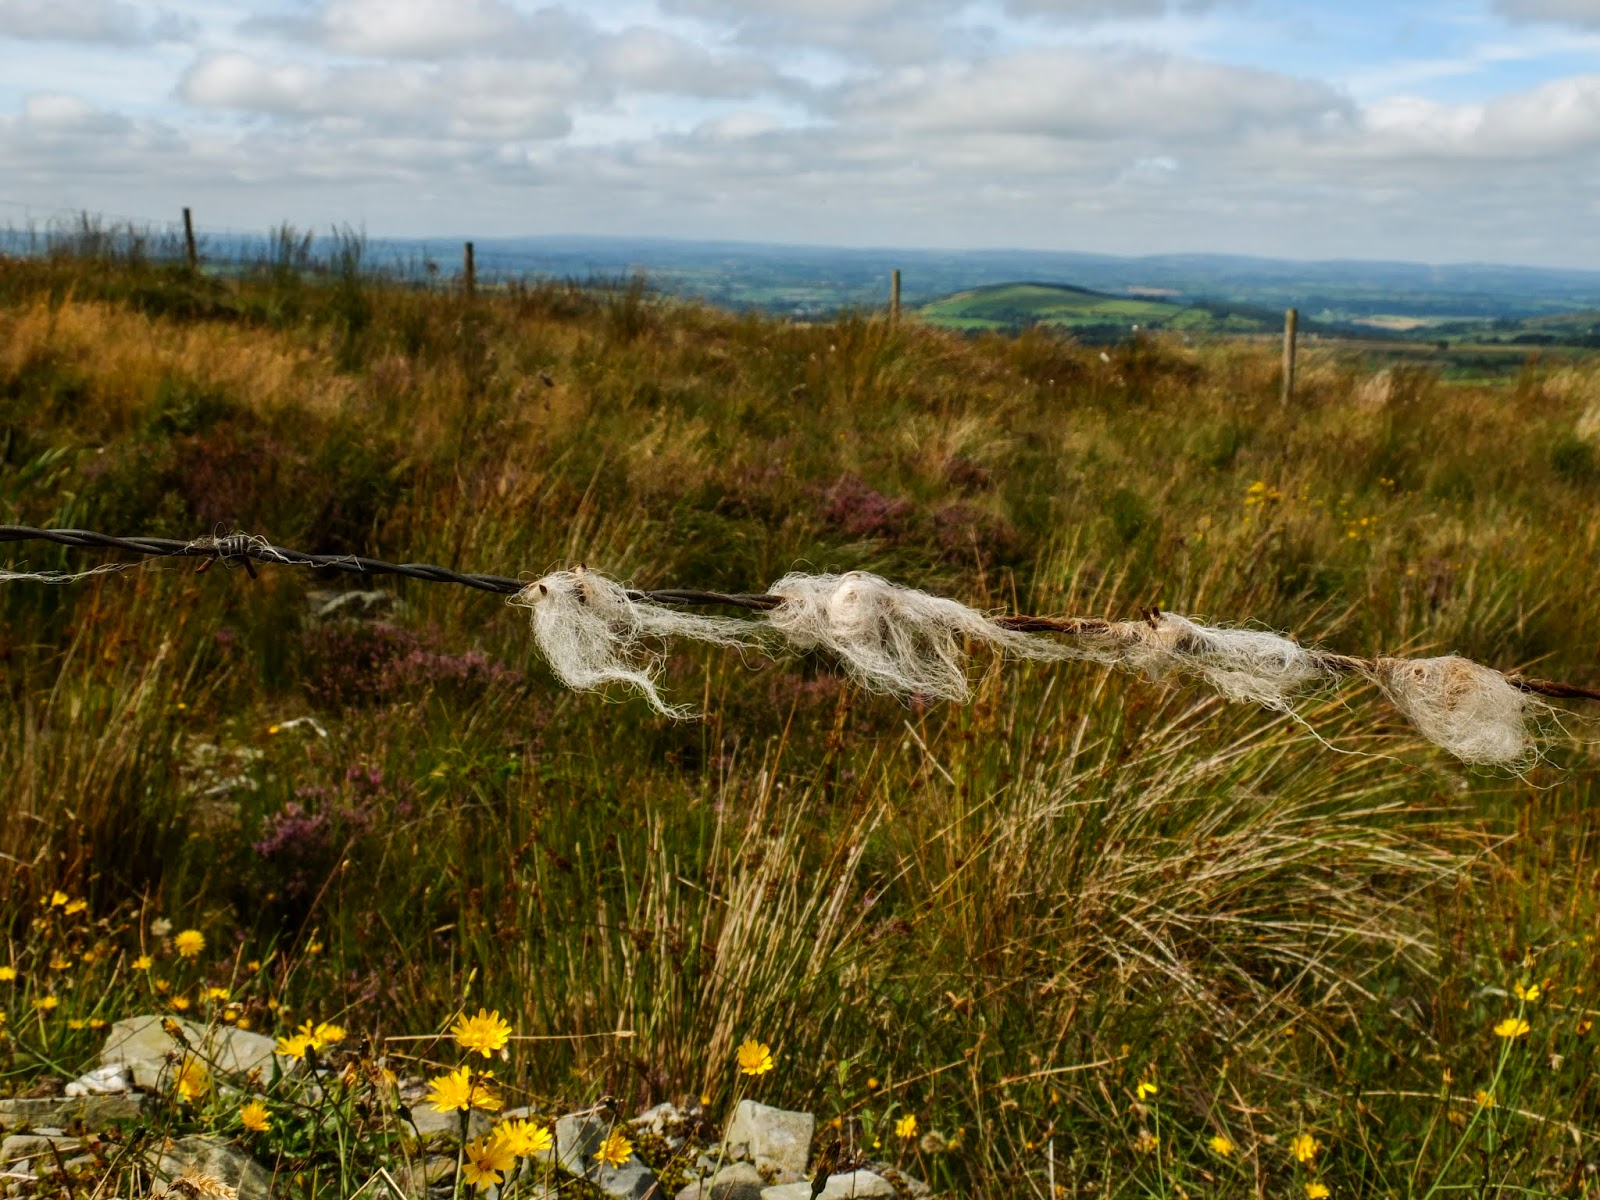 Sheep wool caught on barbed wire in the Boggeragh Mountains, Co.Cork.